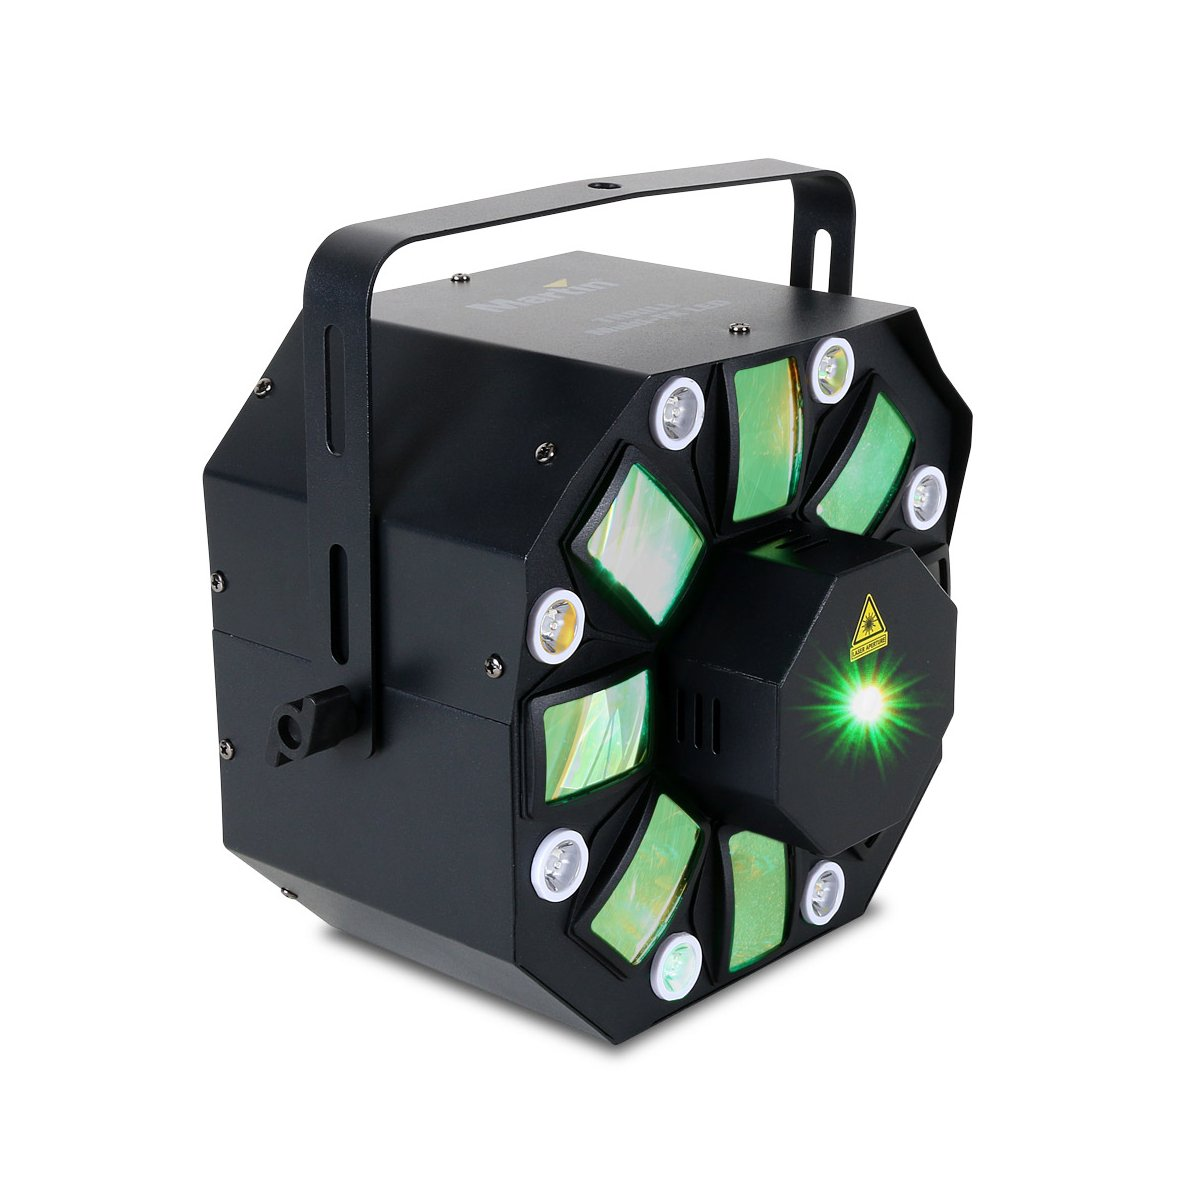 THRILL Multi-FX Wash Light, Laser, and Strobe Effects Fixture by